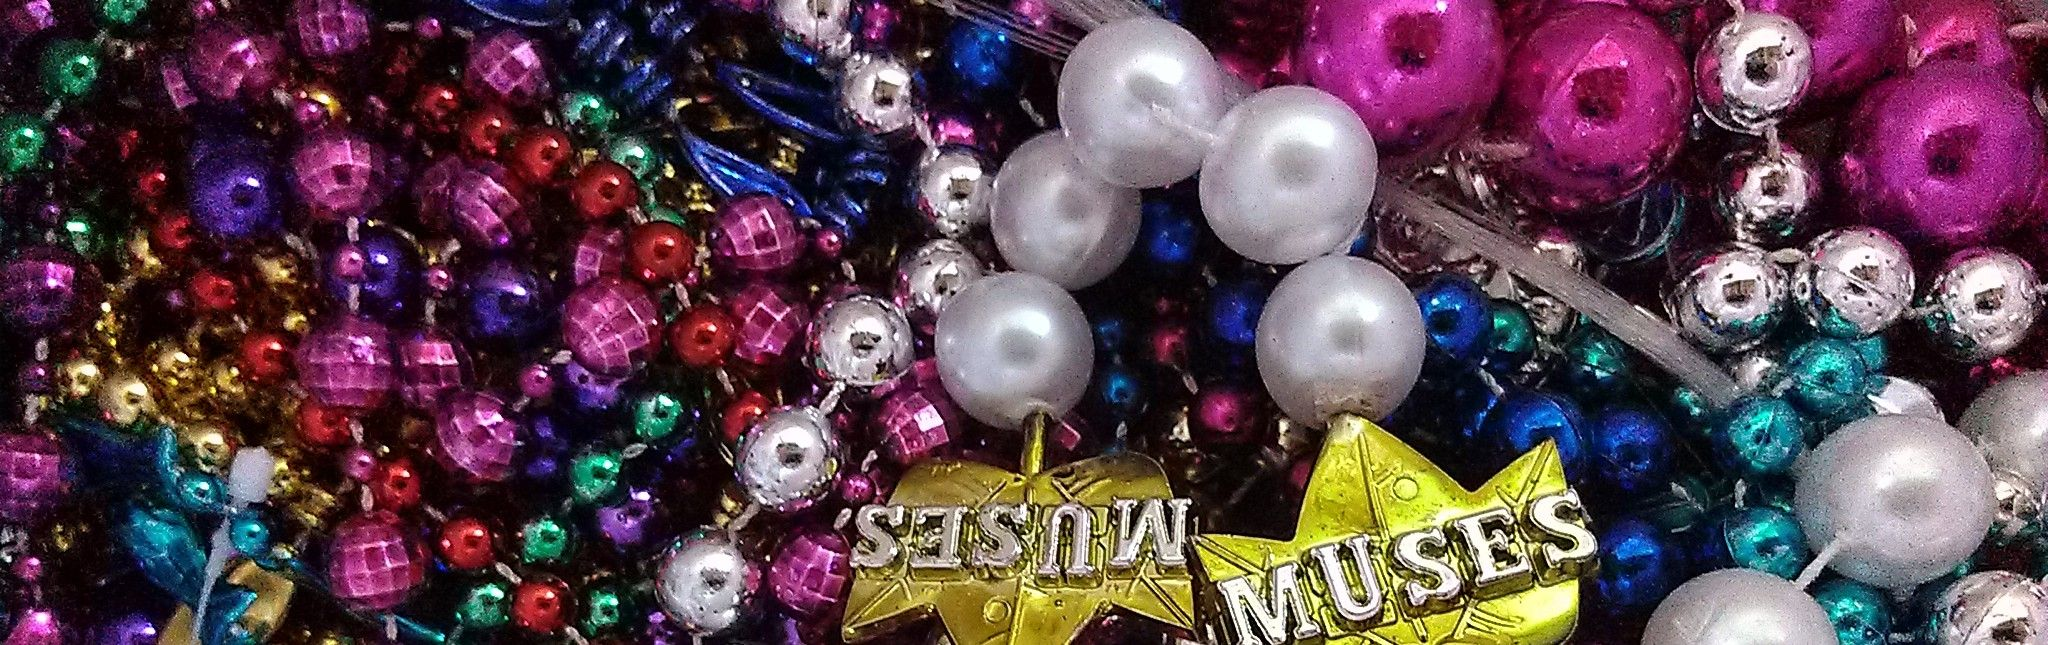 Things to do with mardi gras beads fantastic ideas nola upgrade your chandelier send out mardi gras care packages create a sparkly wreath pictures of all these ideas plus many many more arubaitofo Choice Image